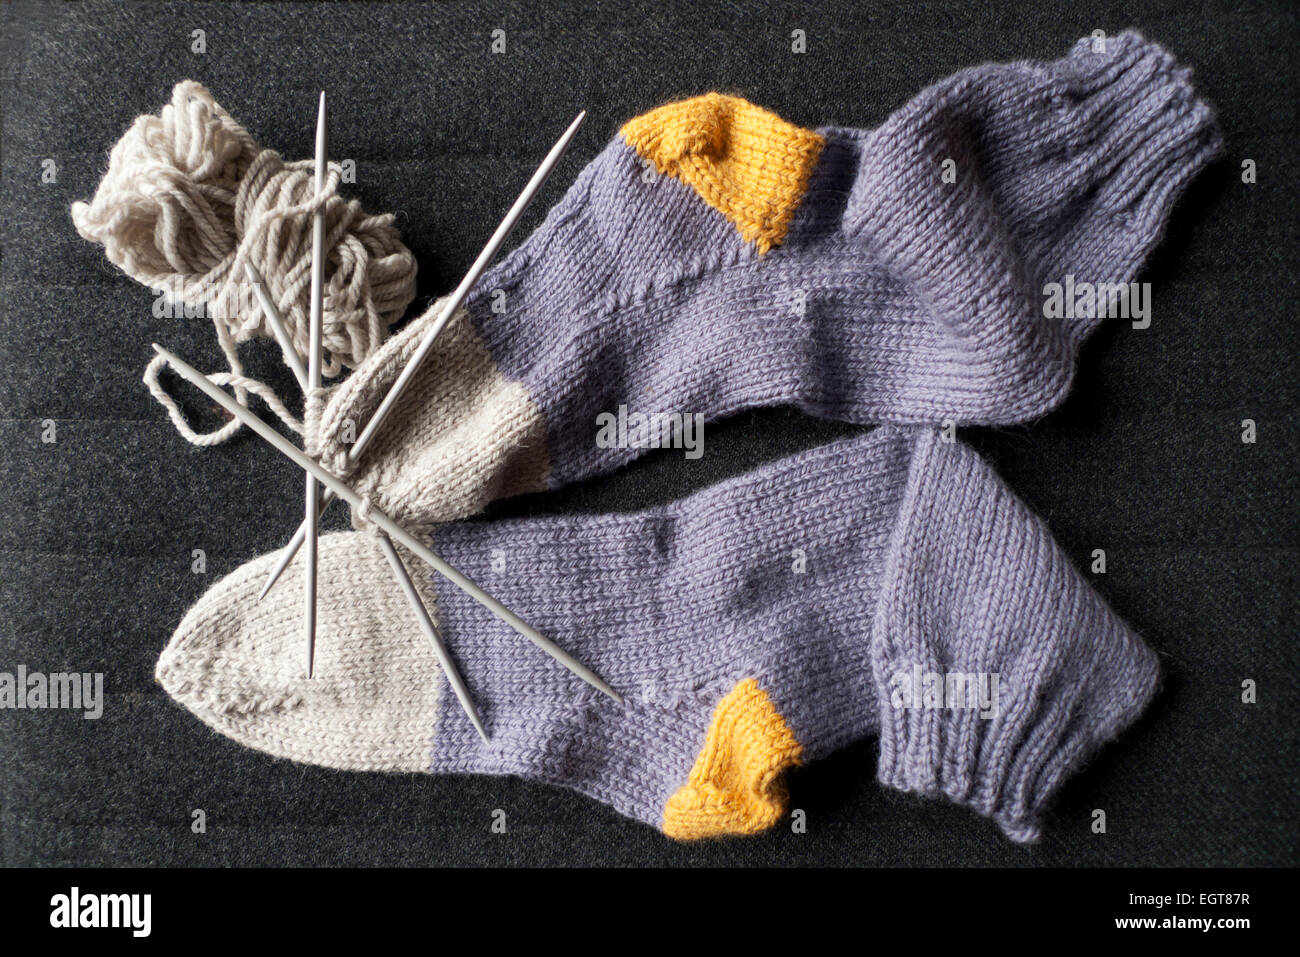 Handknitted purple, grey and yellow socks knitted in Nepal chunky wool, Carmarthenshire Wales UK  KATHY DEWITT - Stock Image